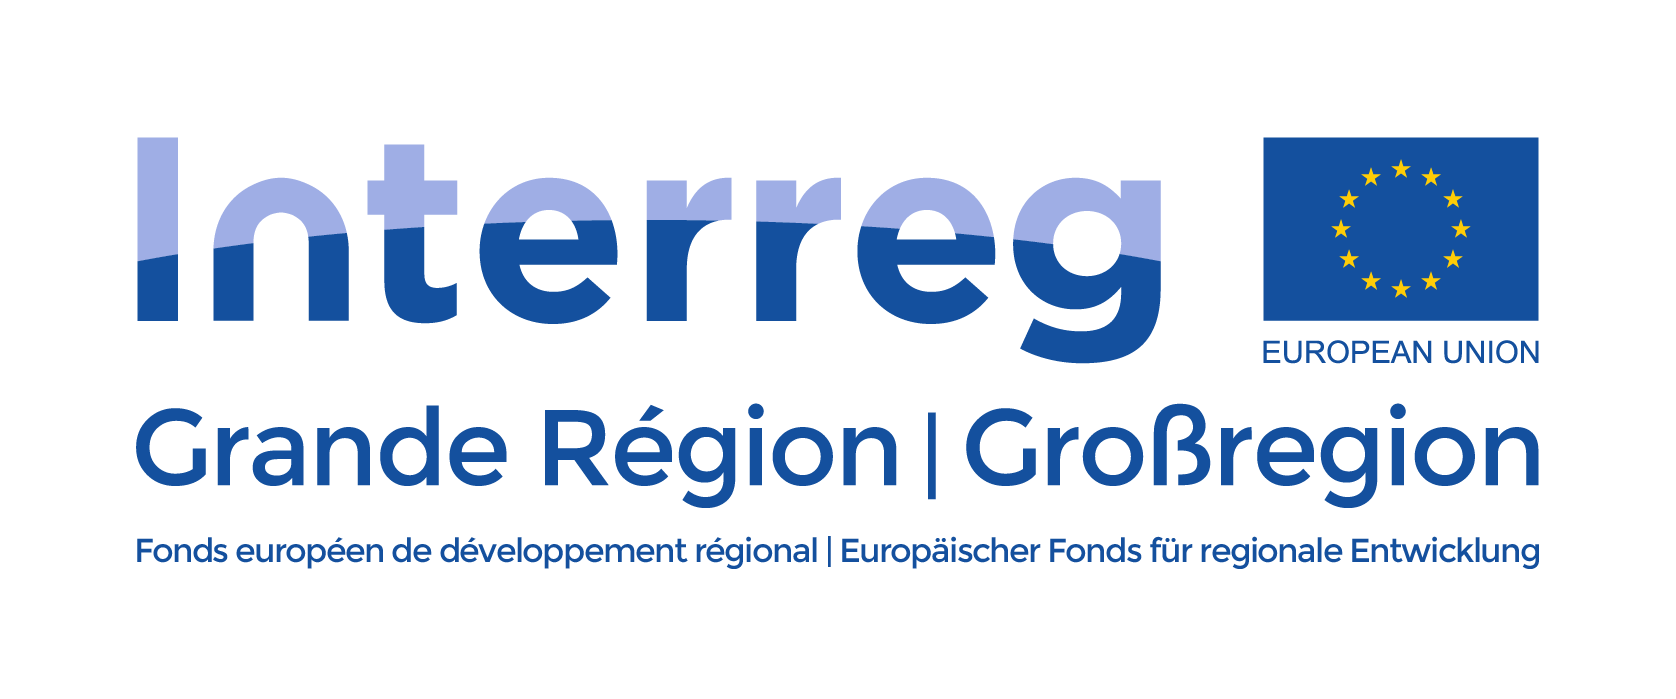 Interreg - Grande Région